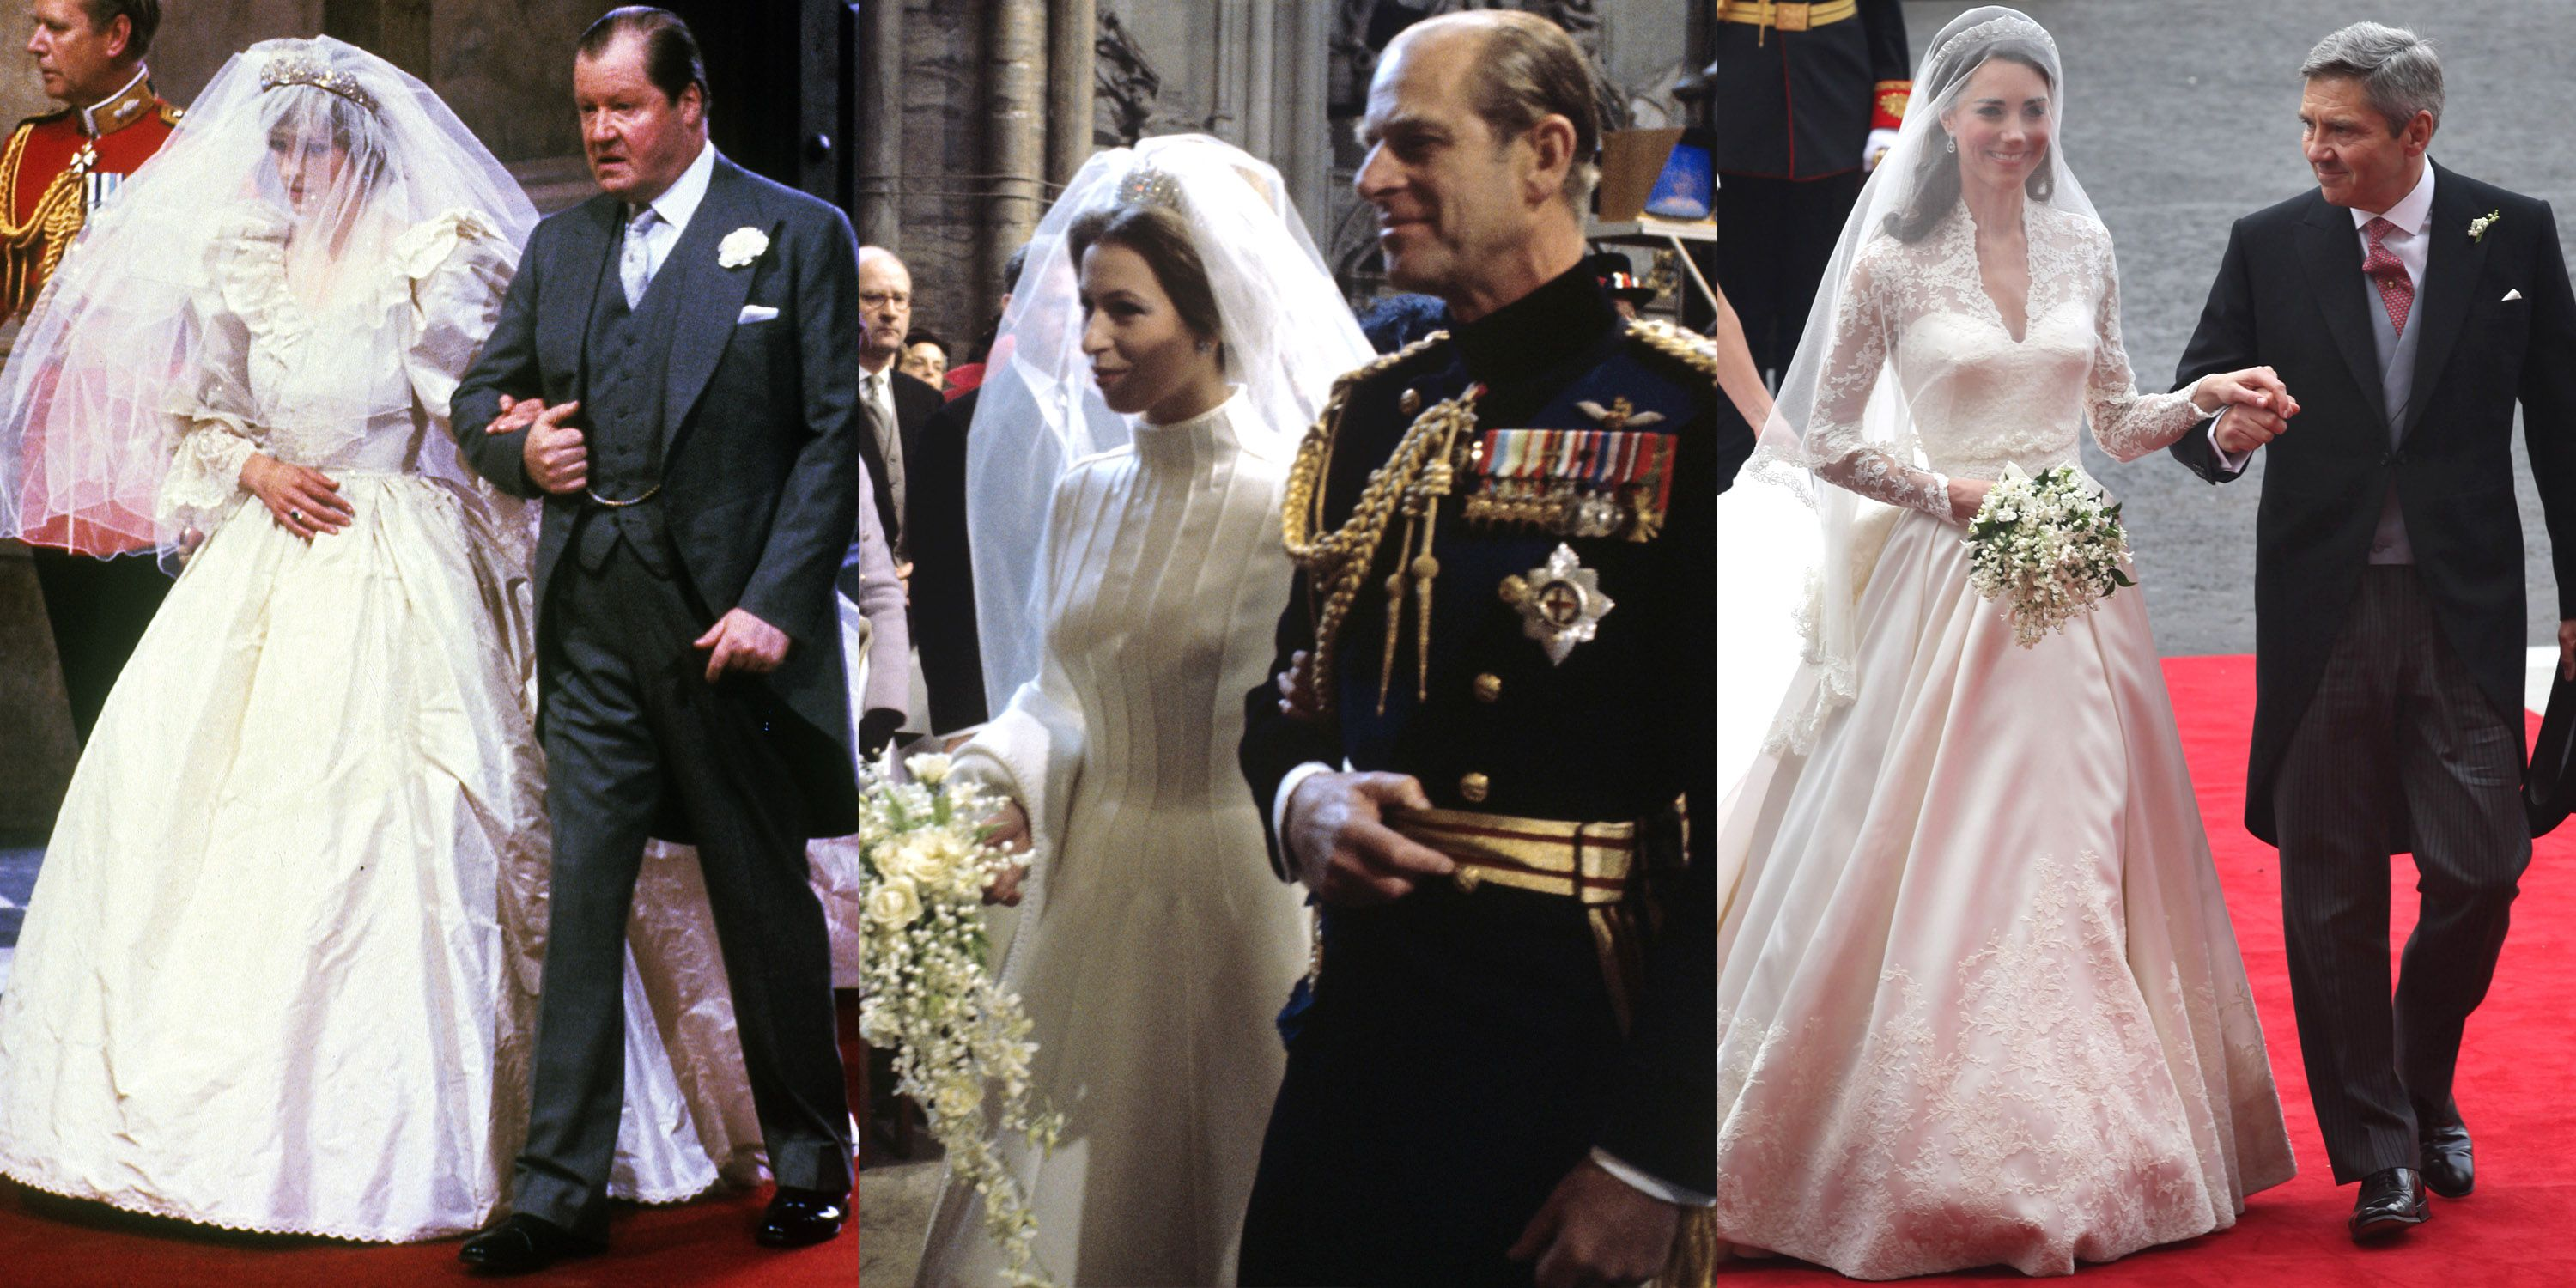 Who Walked Kate Middleton And Other Royal Brides Down The Aisle At